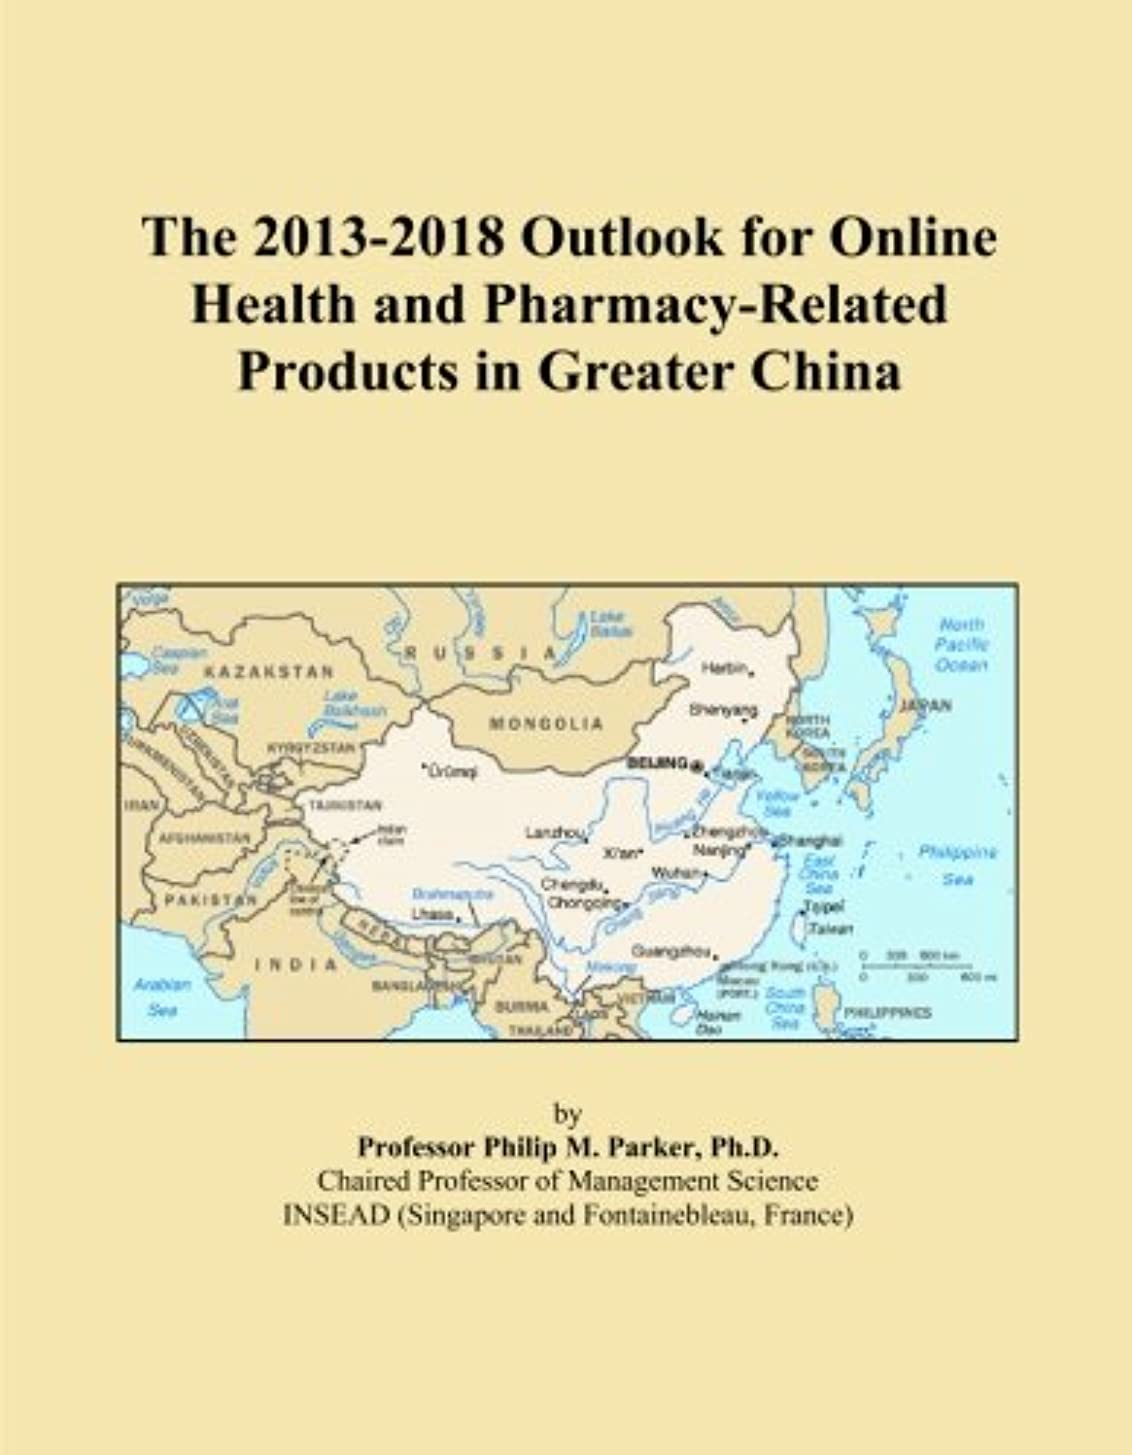 物足りない団結近々The 2013-2018 Outlook for Online Health and Pharmacy-Related Products in Greater China